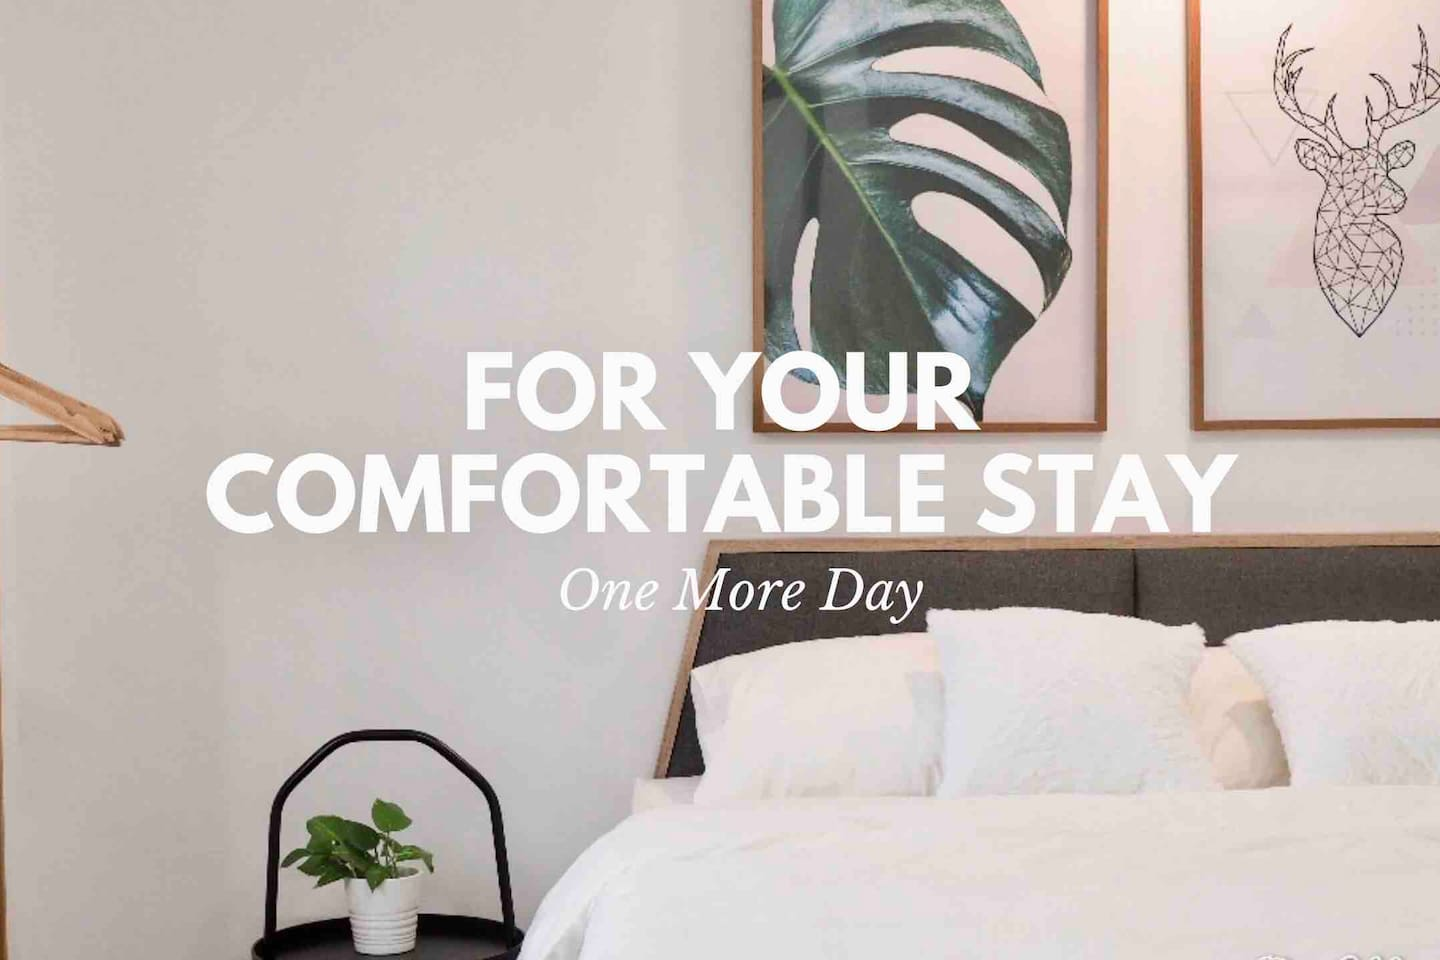 Make your next stay a comfortable stay